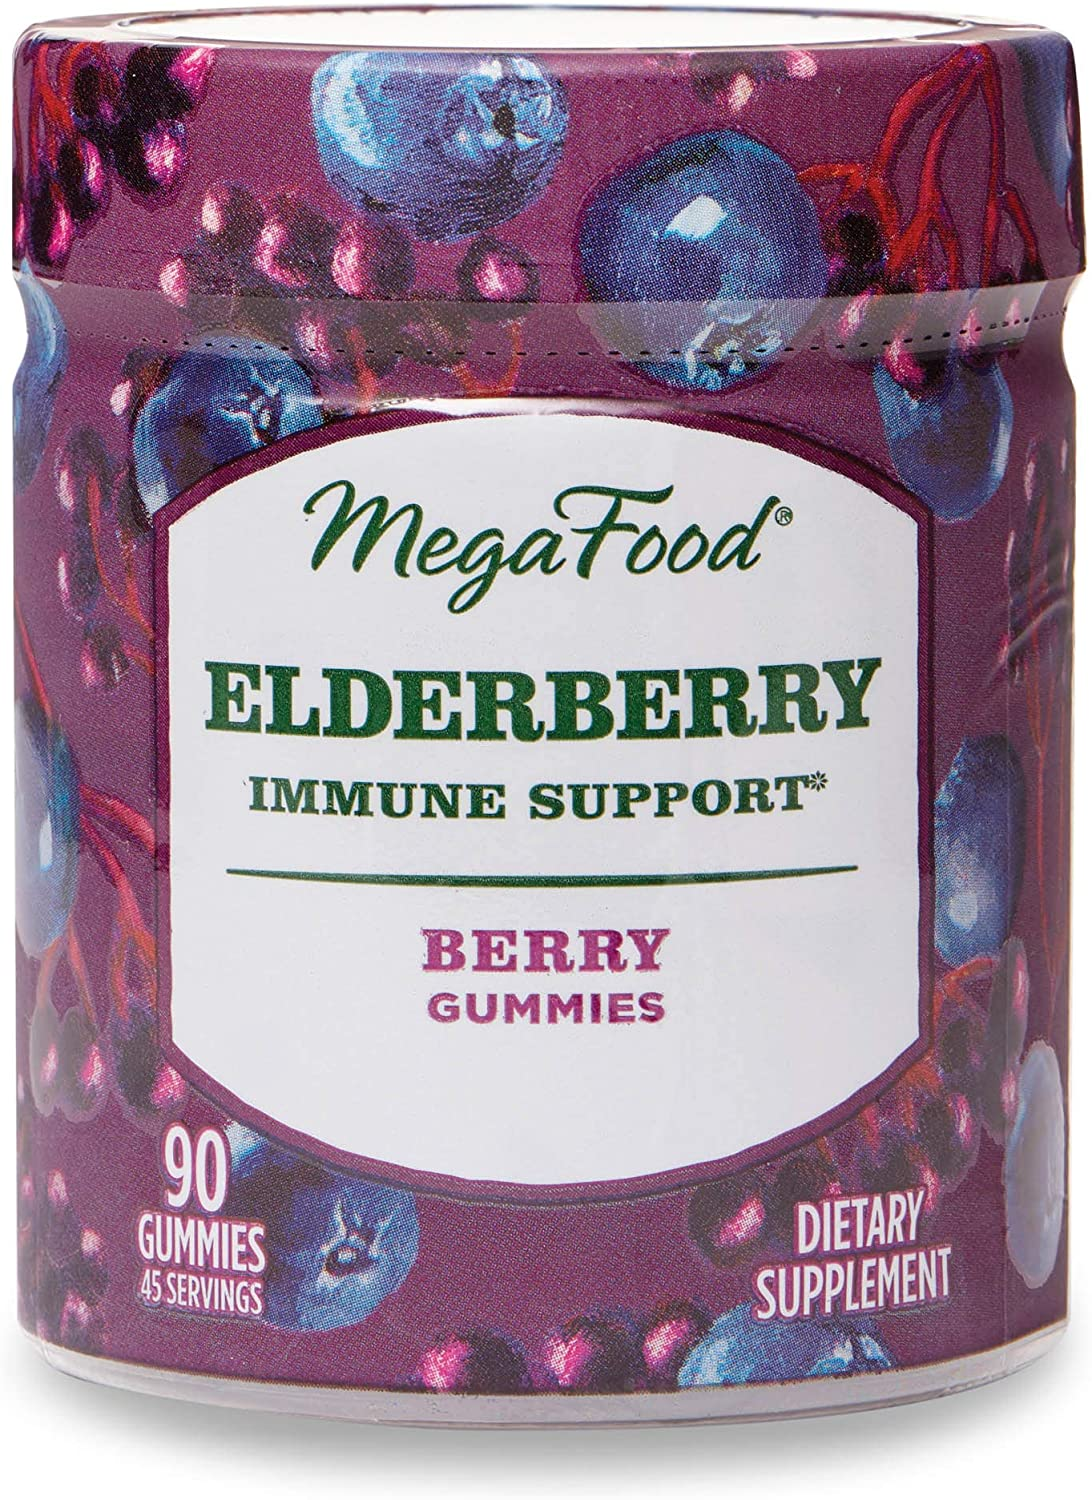 megafoods elderberry gummies